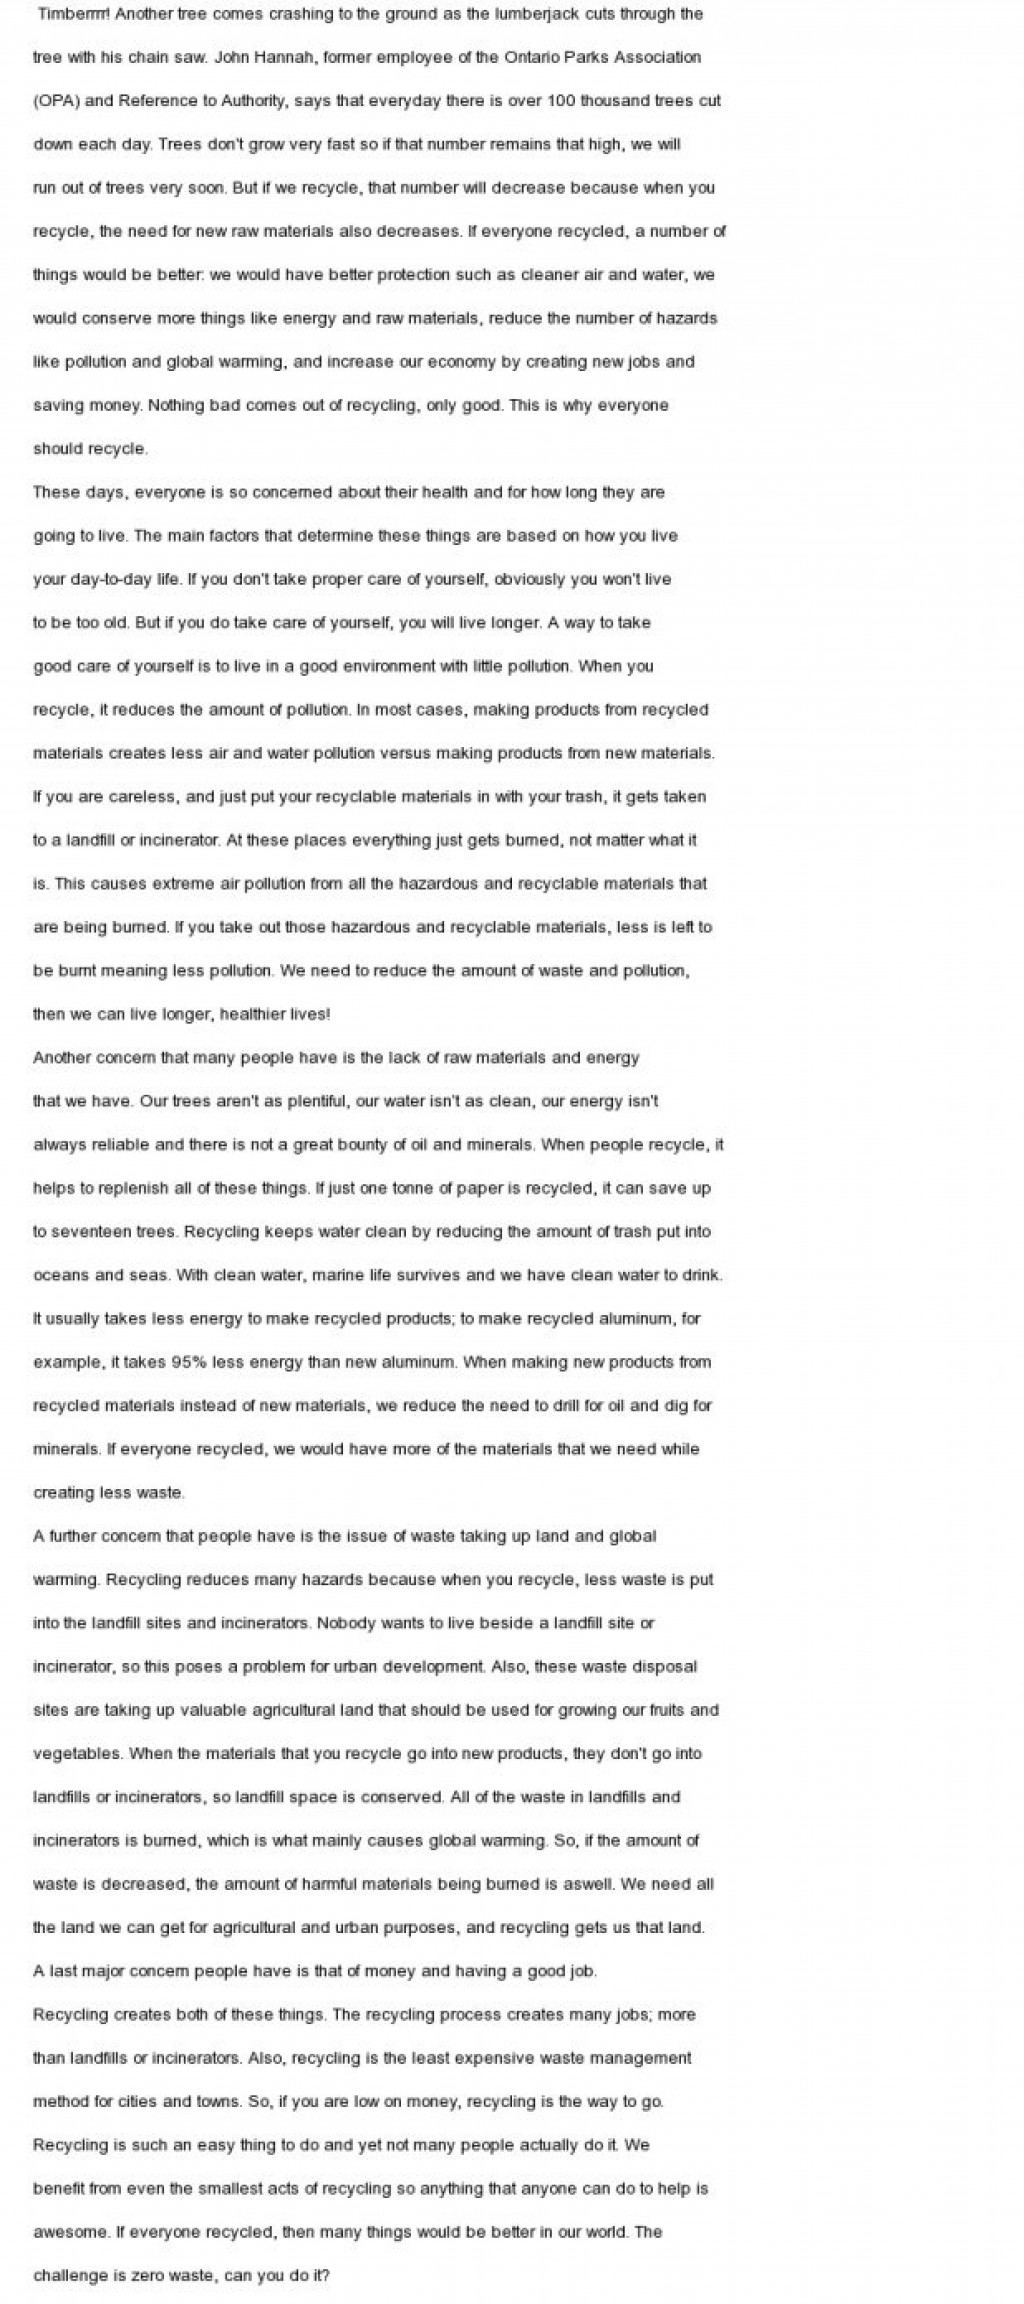 008 Essay Example On Aliens In Earth Save Custom Resume Writing Take The Challenege Our For Class Earthworms Earths Seasons Marathi Science English Earthquake Nepal Marvelous Large